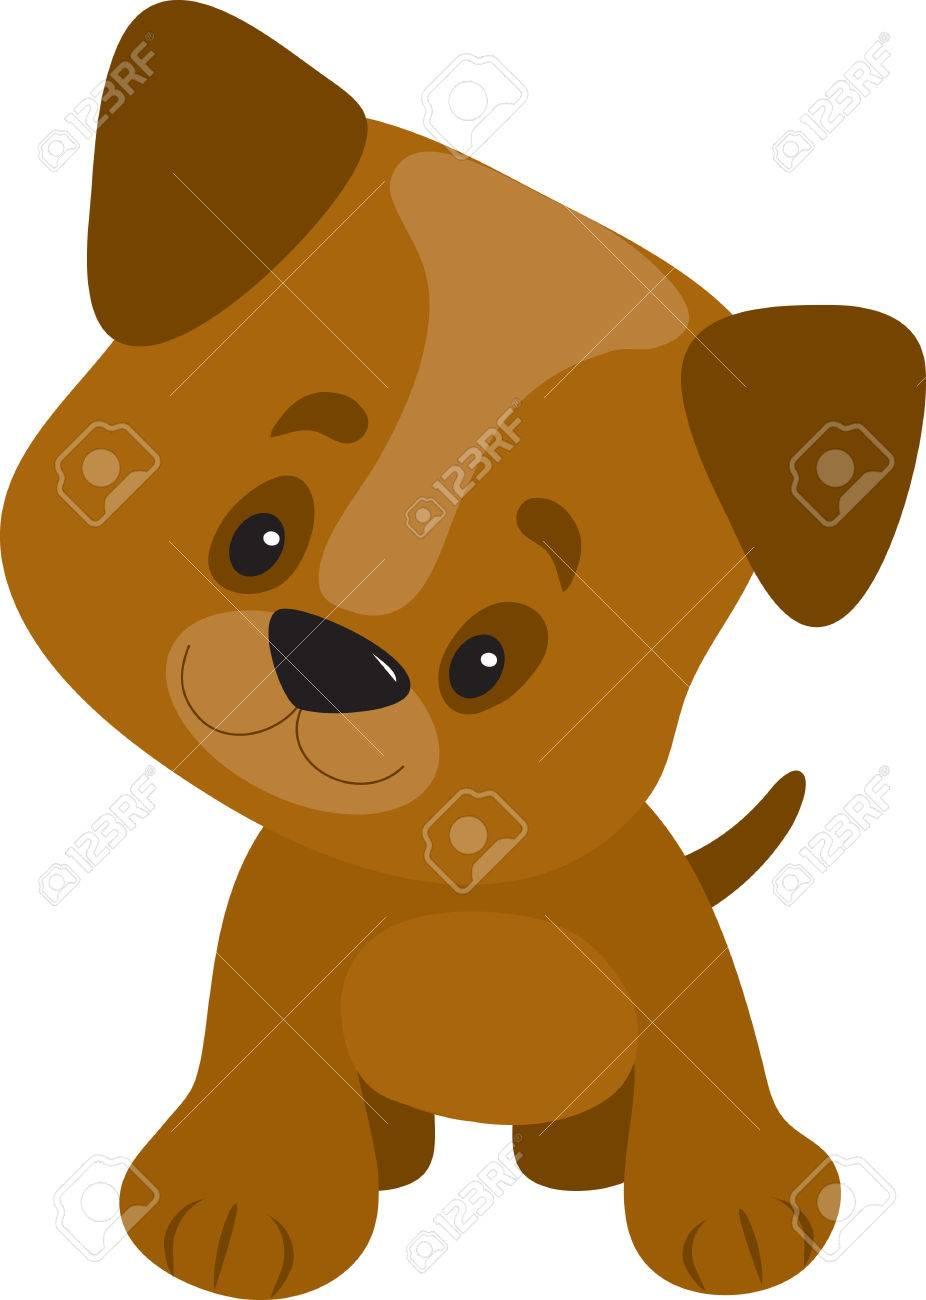 A cute little puppy with a big head looking curious and happy Stock Vector - 6728099